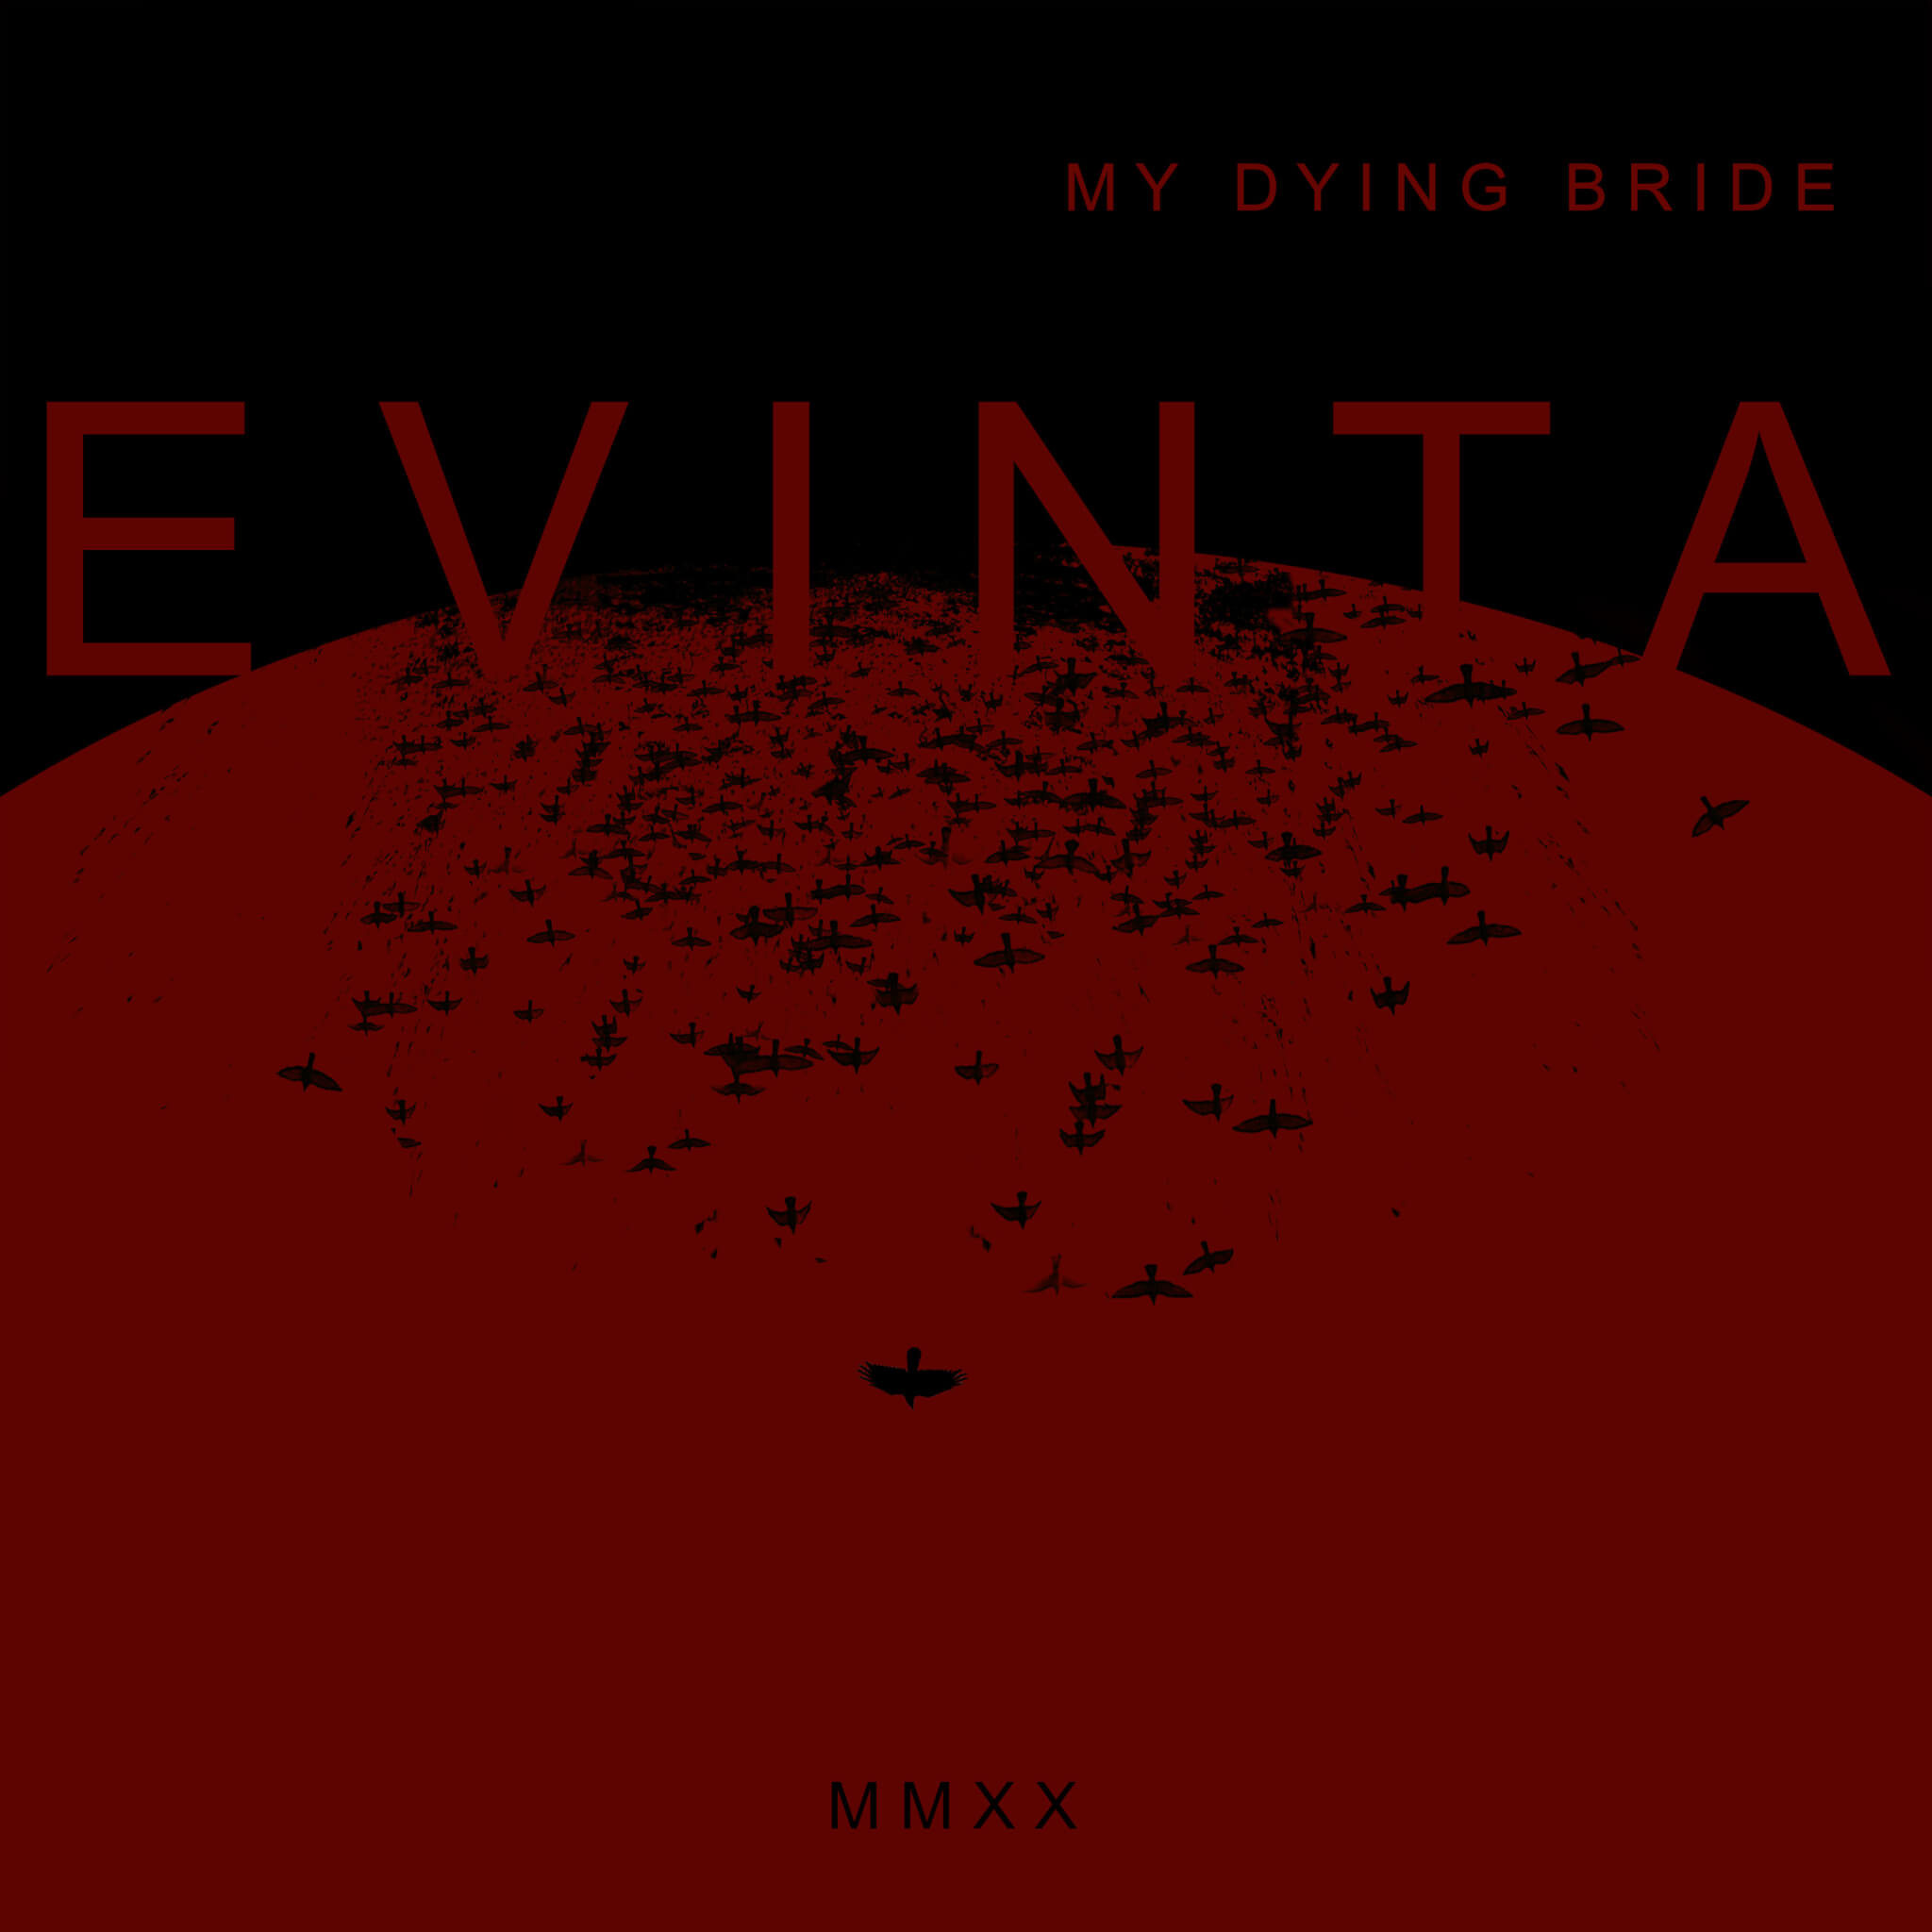 My Dying Bride – Evinta (MMXX) Limited edition 30th anniversary vinyl edition released December 4th